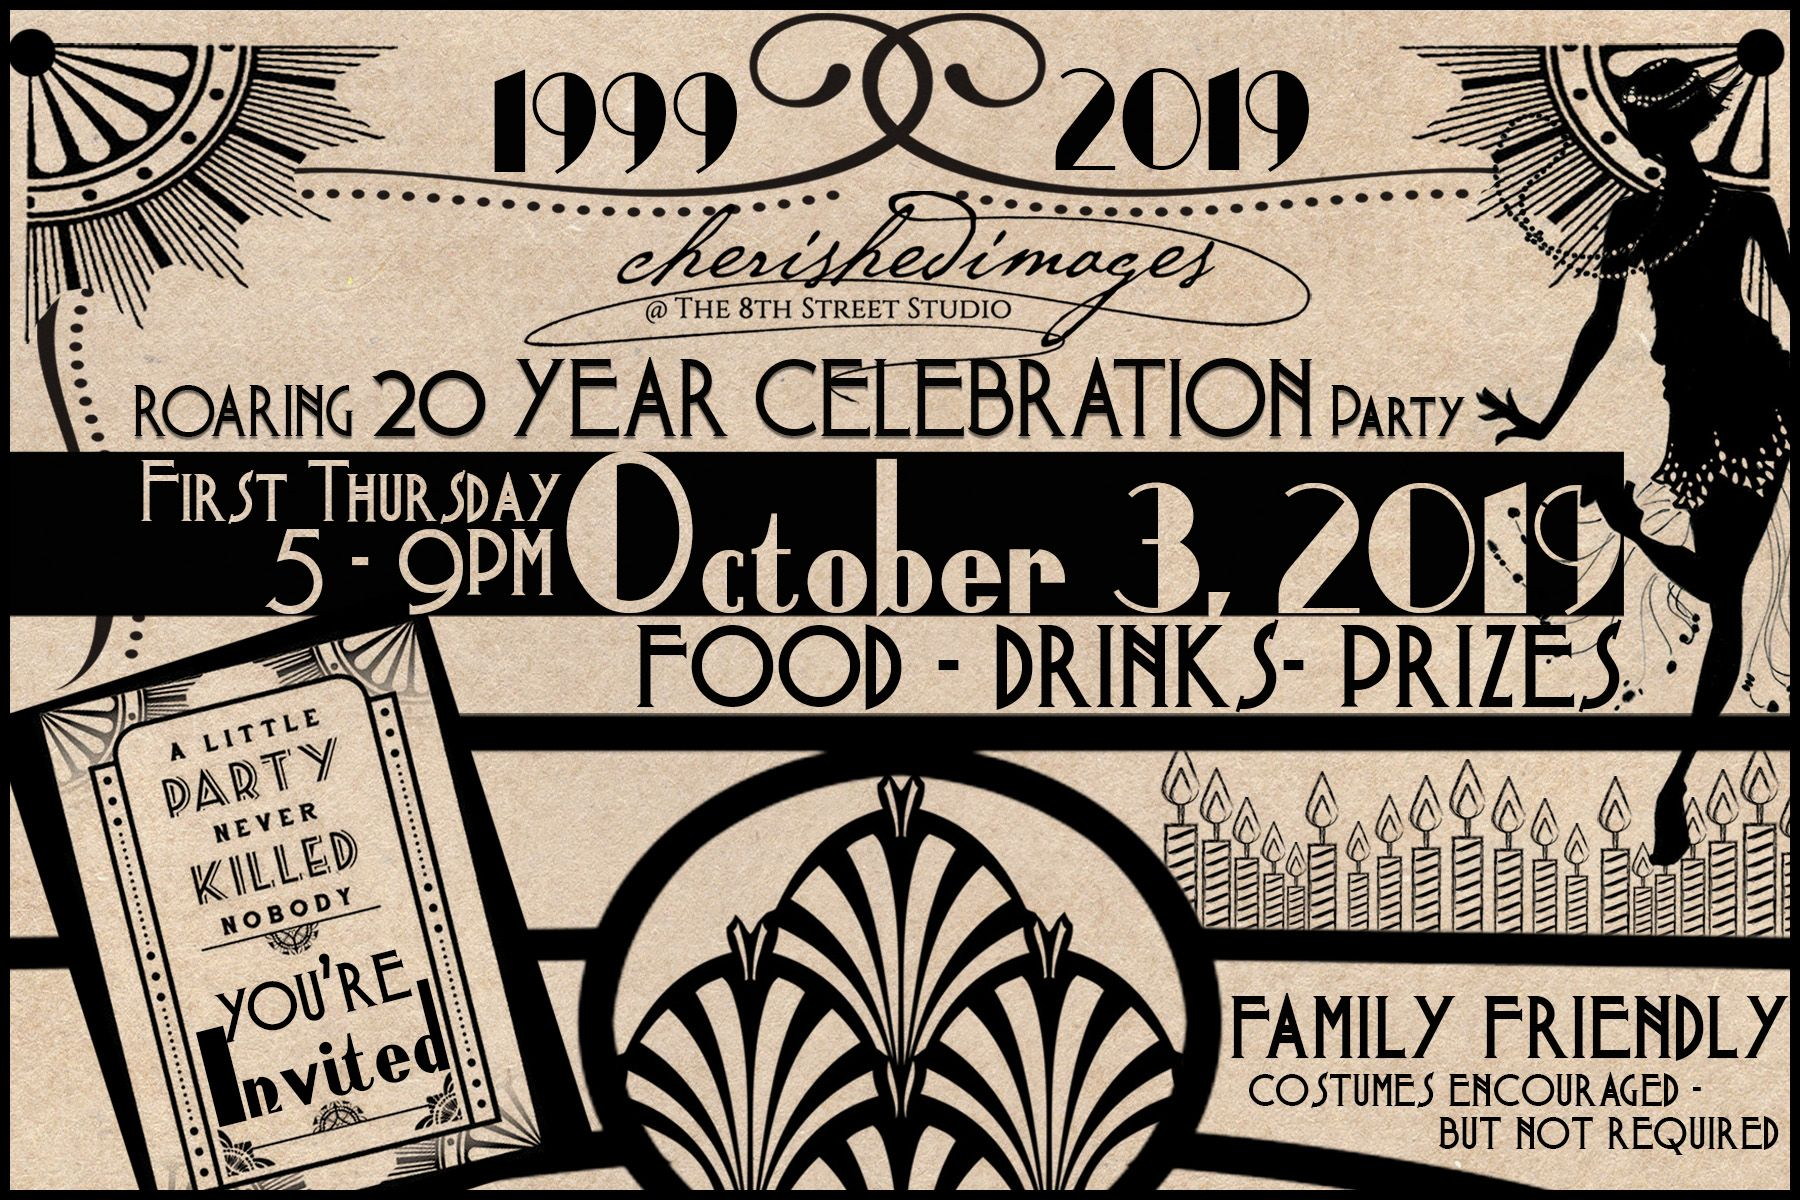 Cherished Images Celebrates 20th Anniversary with a Roaring 20's PARTY!!